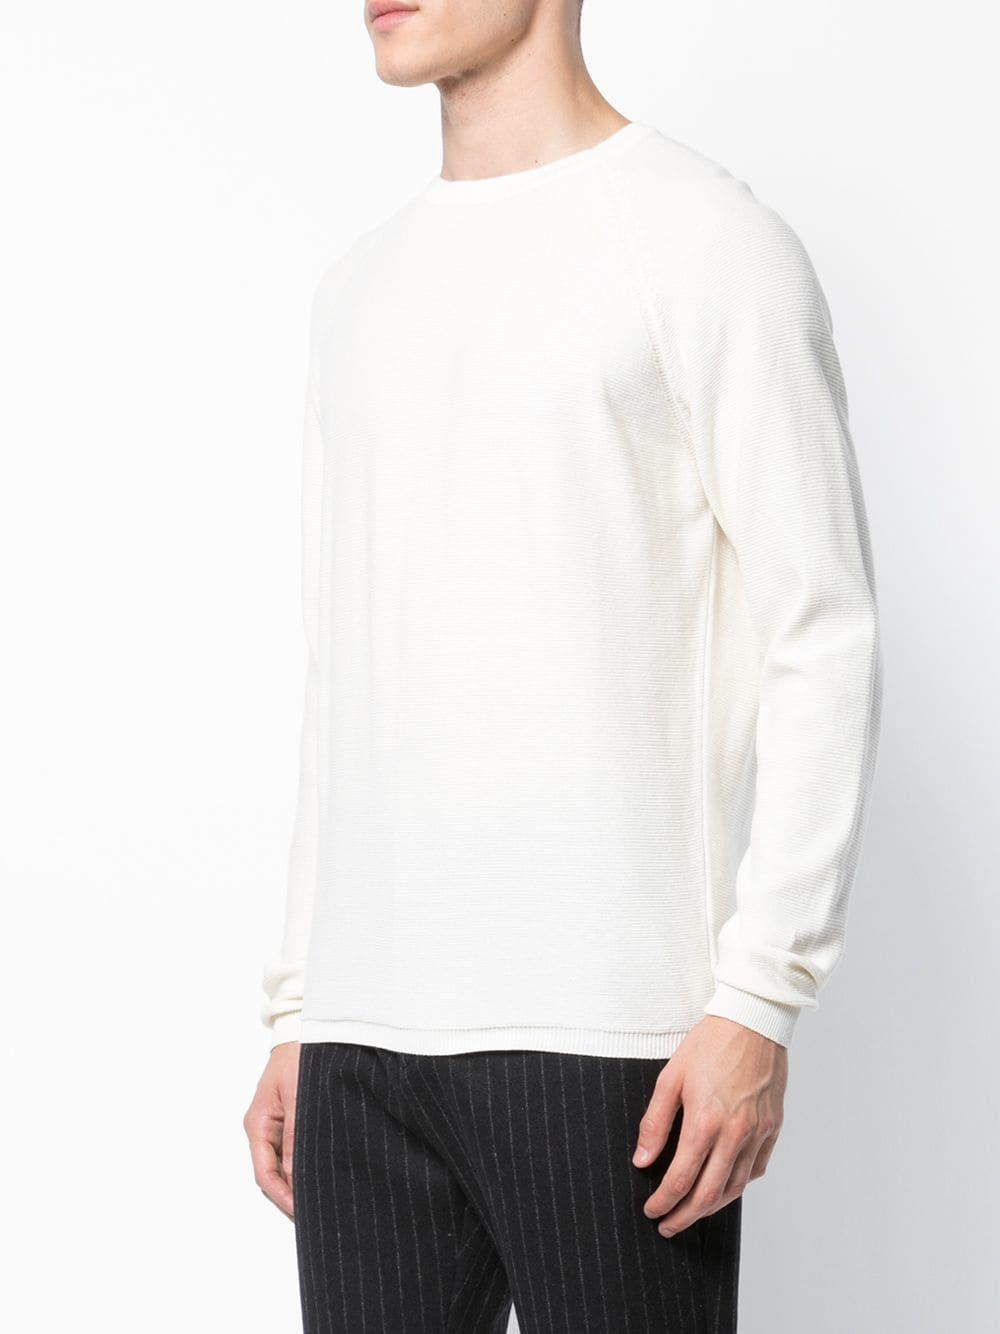 Homecore Cotton Iris Knitted Jumper in White for Men